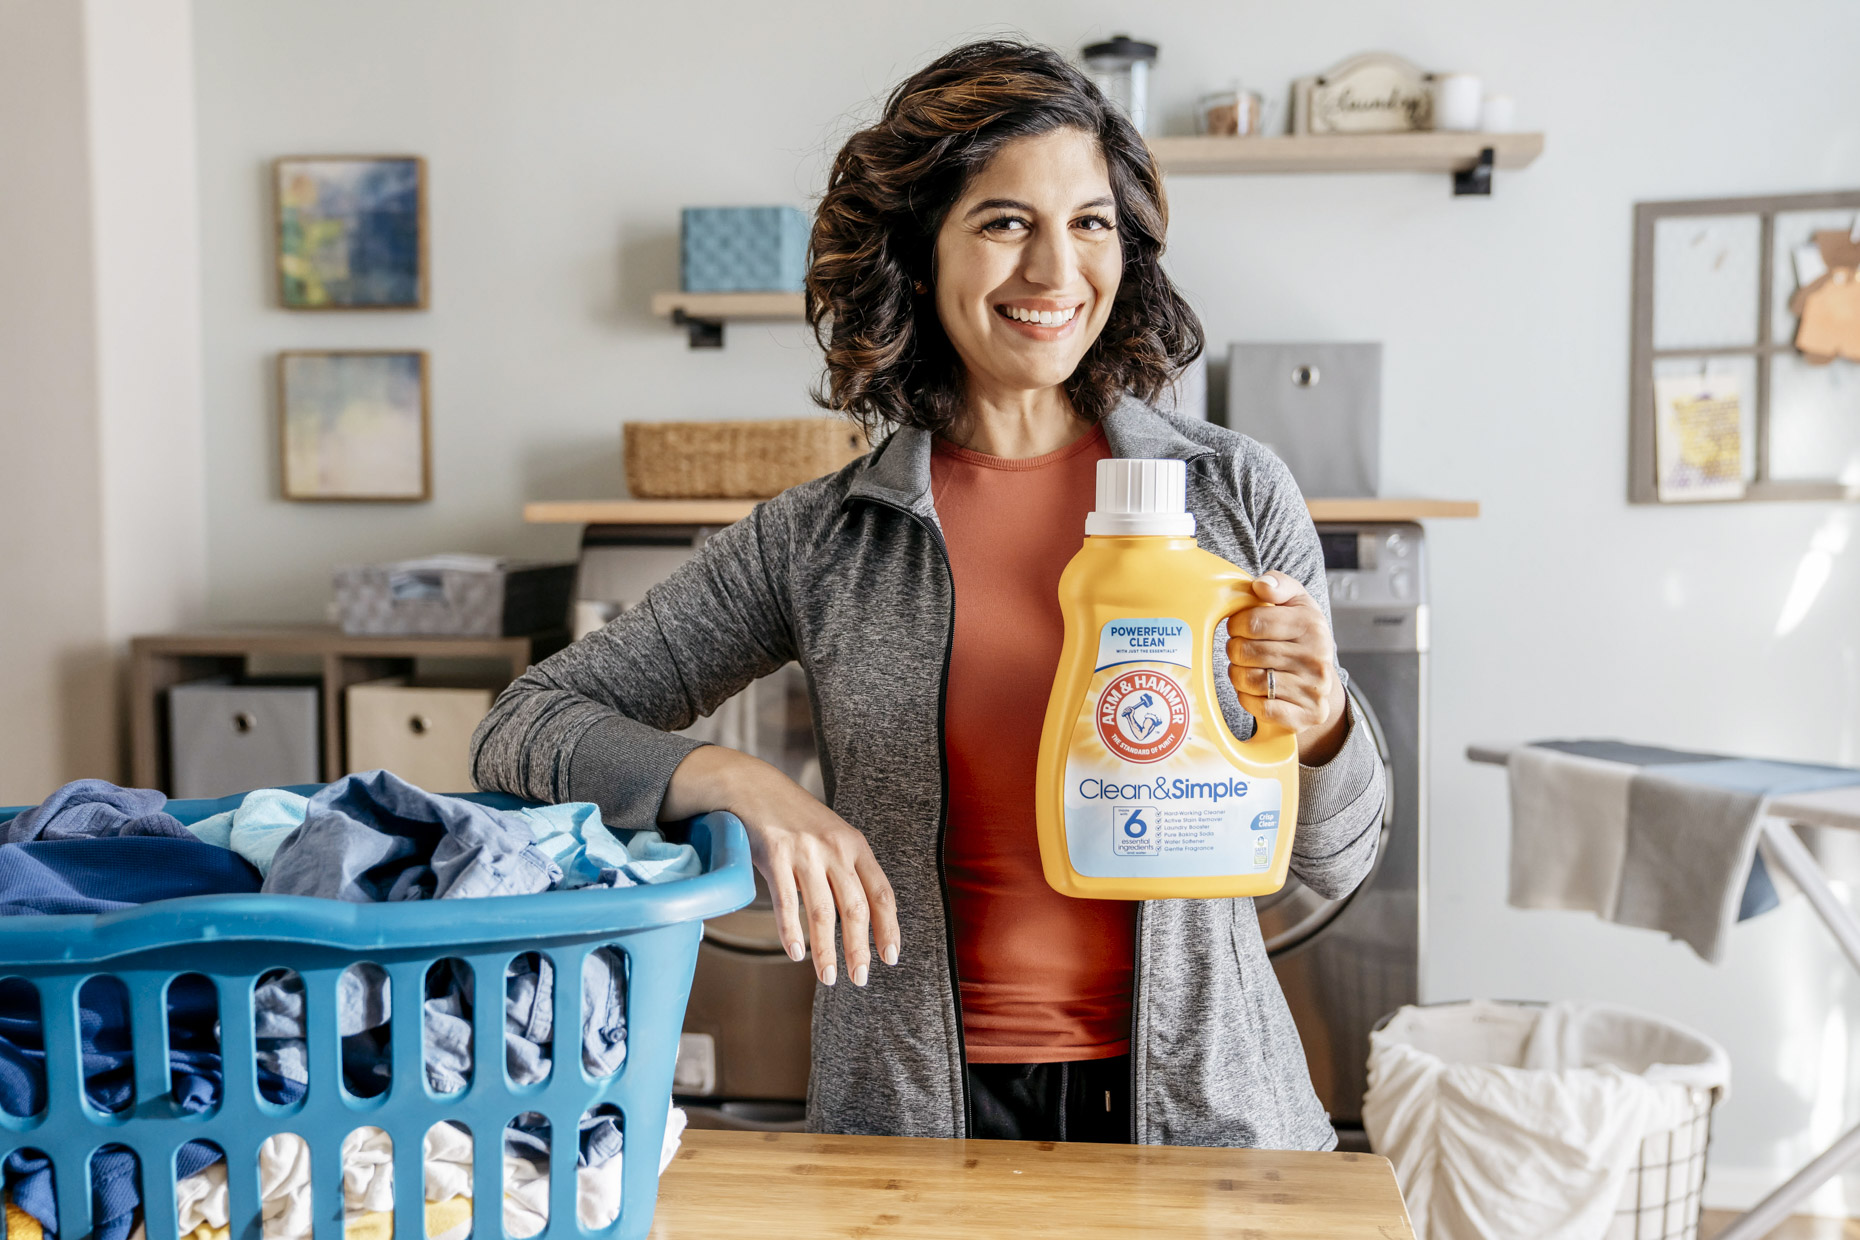 Smiling woman with bottle of Arm and Hammer detergent and basket of laundry